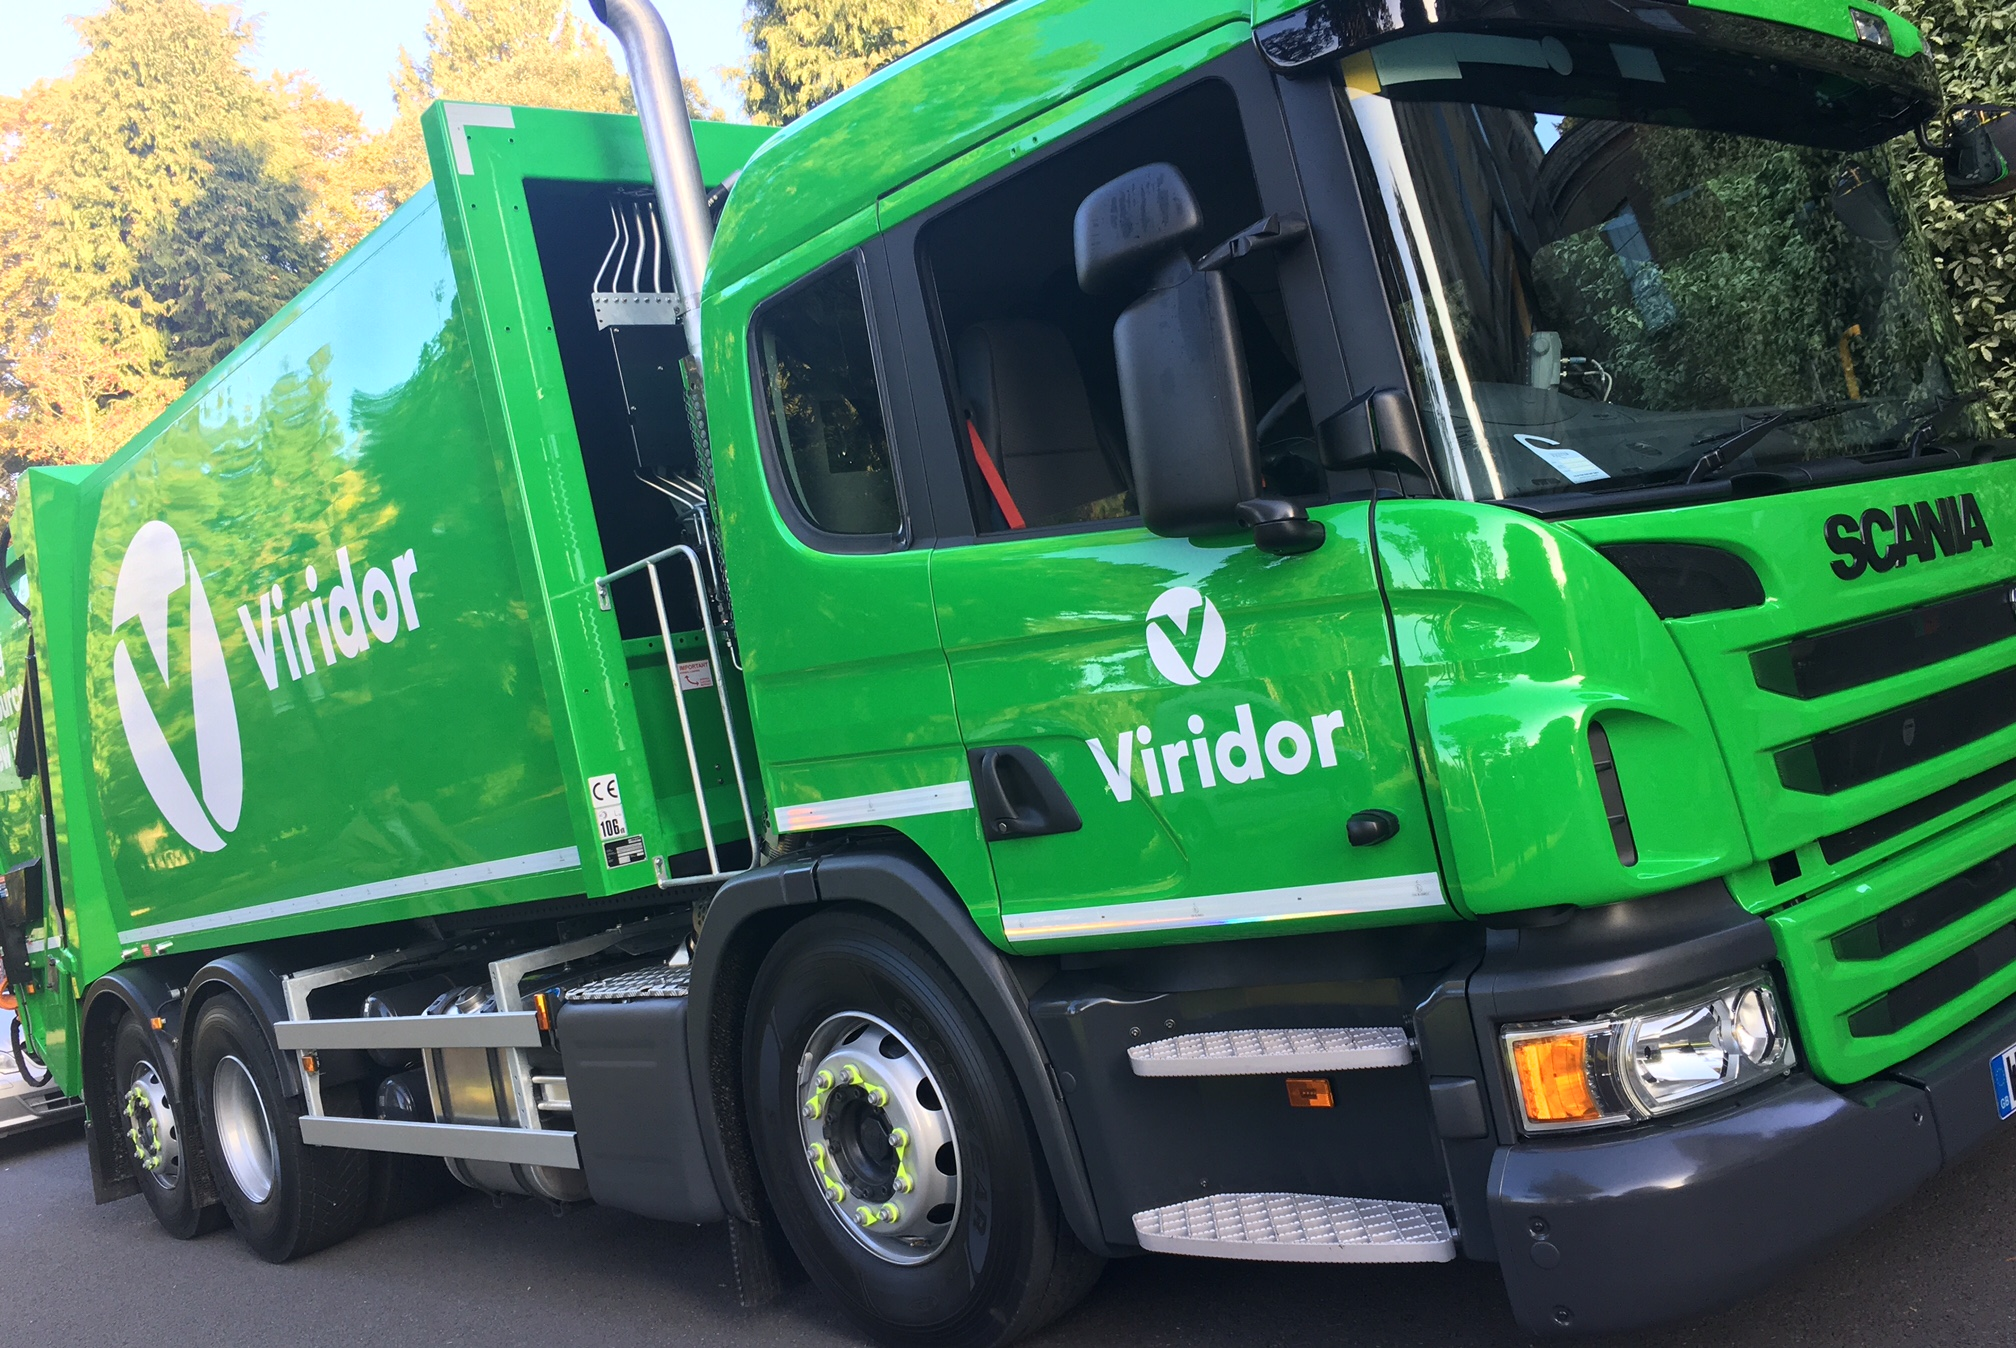 Viridor Plymouth Colections Unit - Plymouth, Devon PL7 4JW - 01752 339551 | ShowMeLocal.com